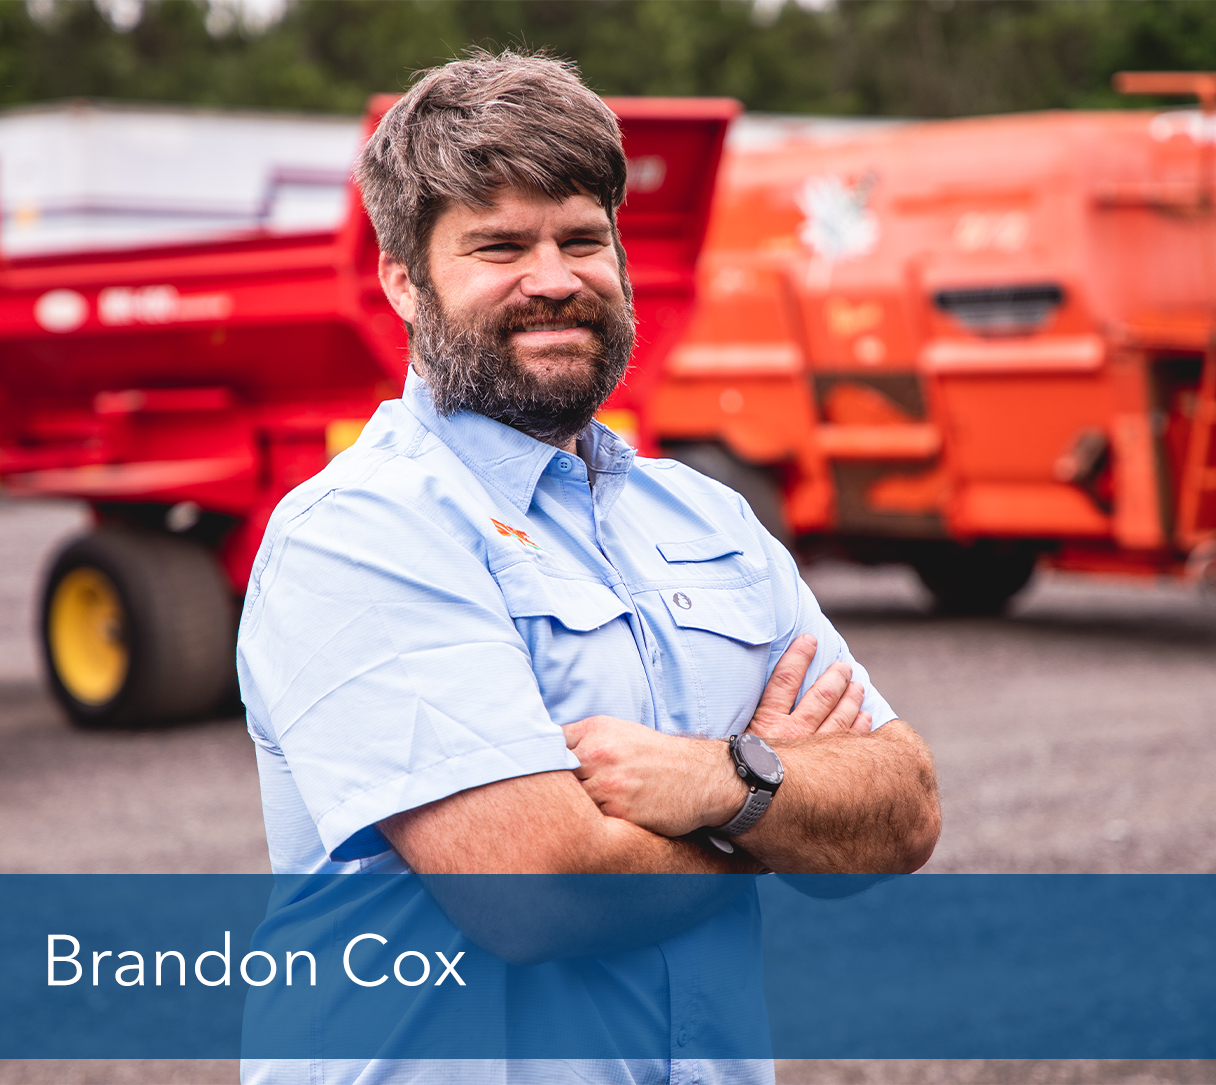 <b>Bandon Cox</b>, Operations Manager <br><p></p>